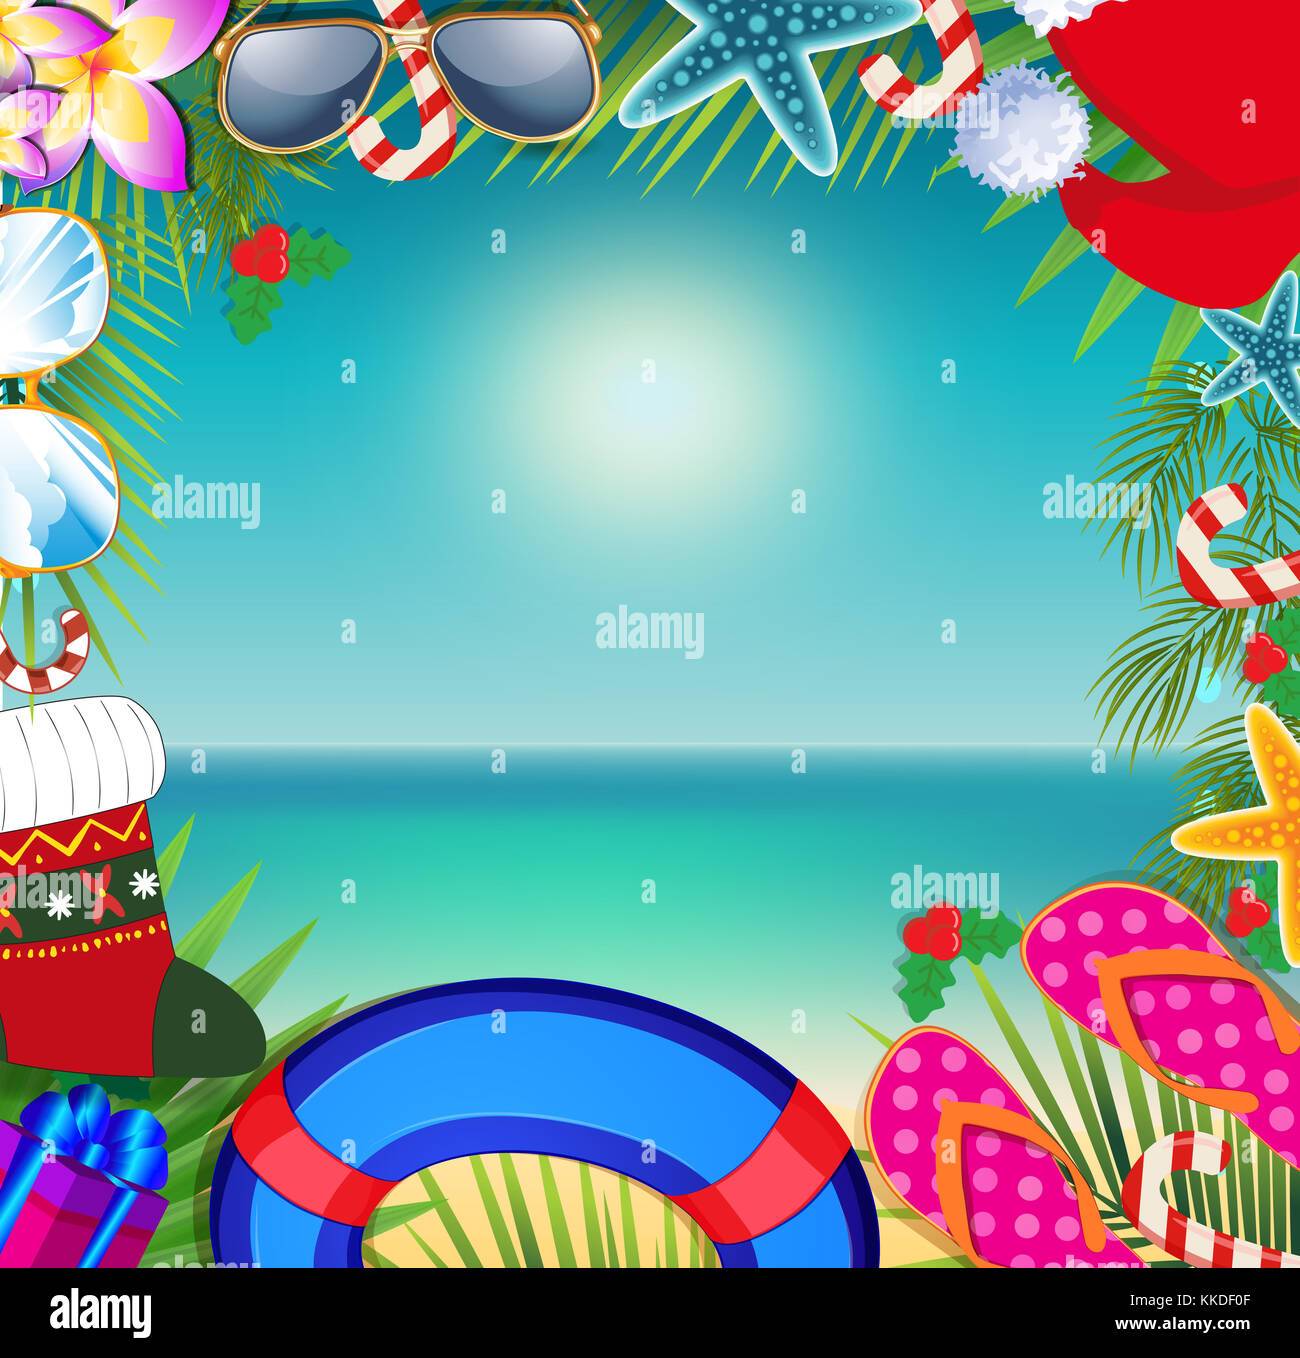 merry christmas and happy new year border on a warm climate design background summer vacation accessories and palm leaves with santa hat on beach ba